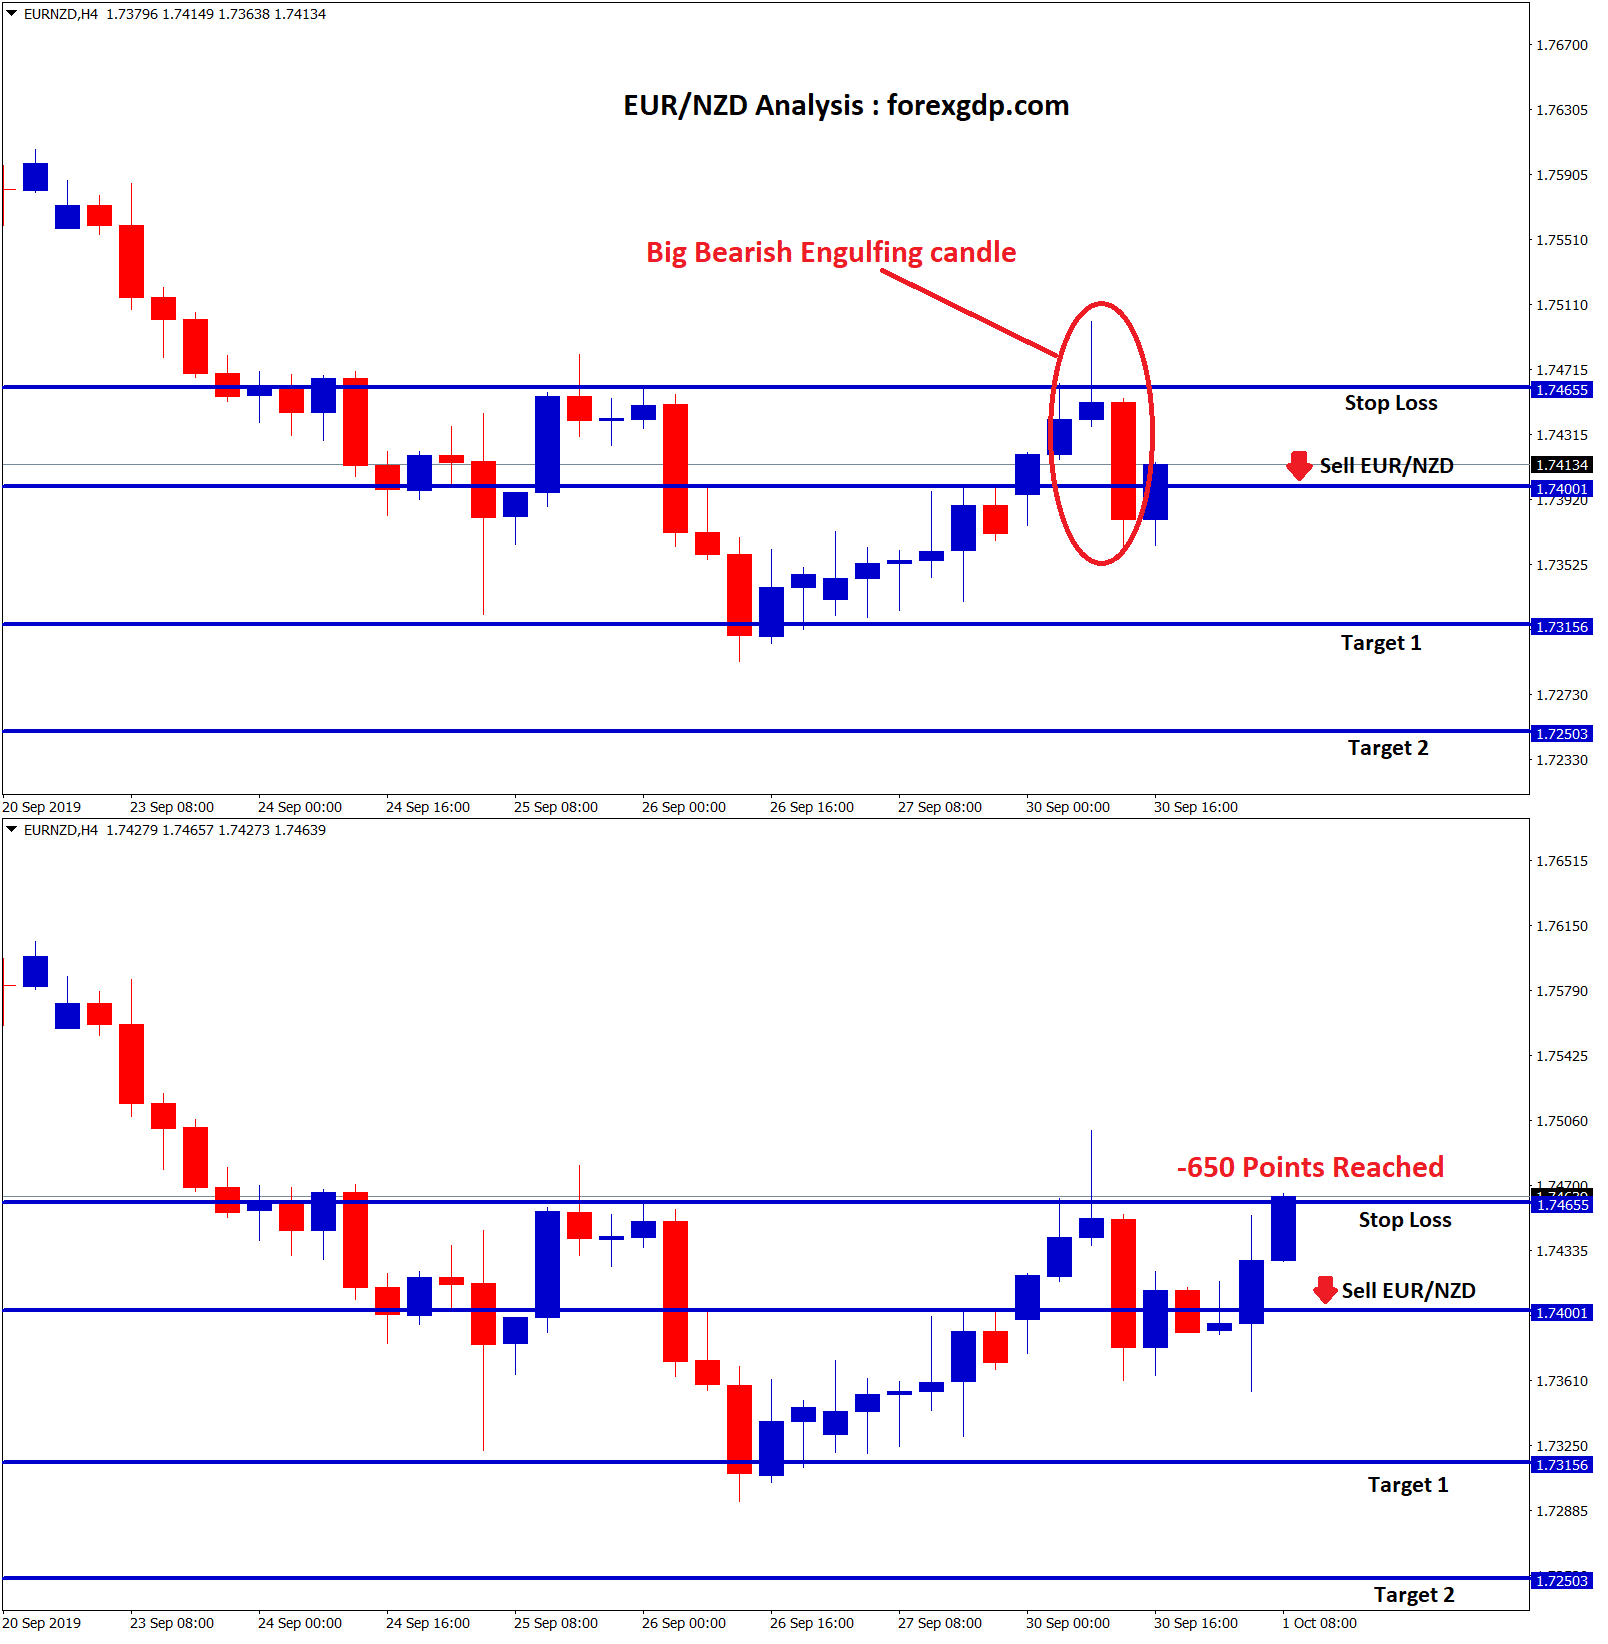 Stop loss reached with -650 points in eur nzd sell signal